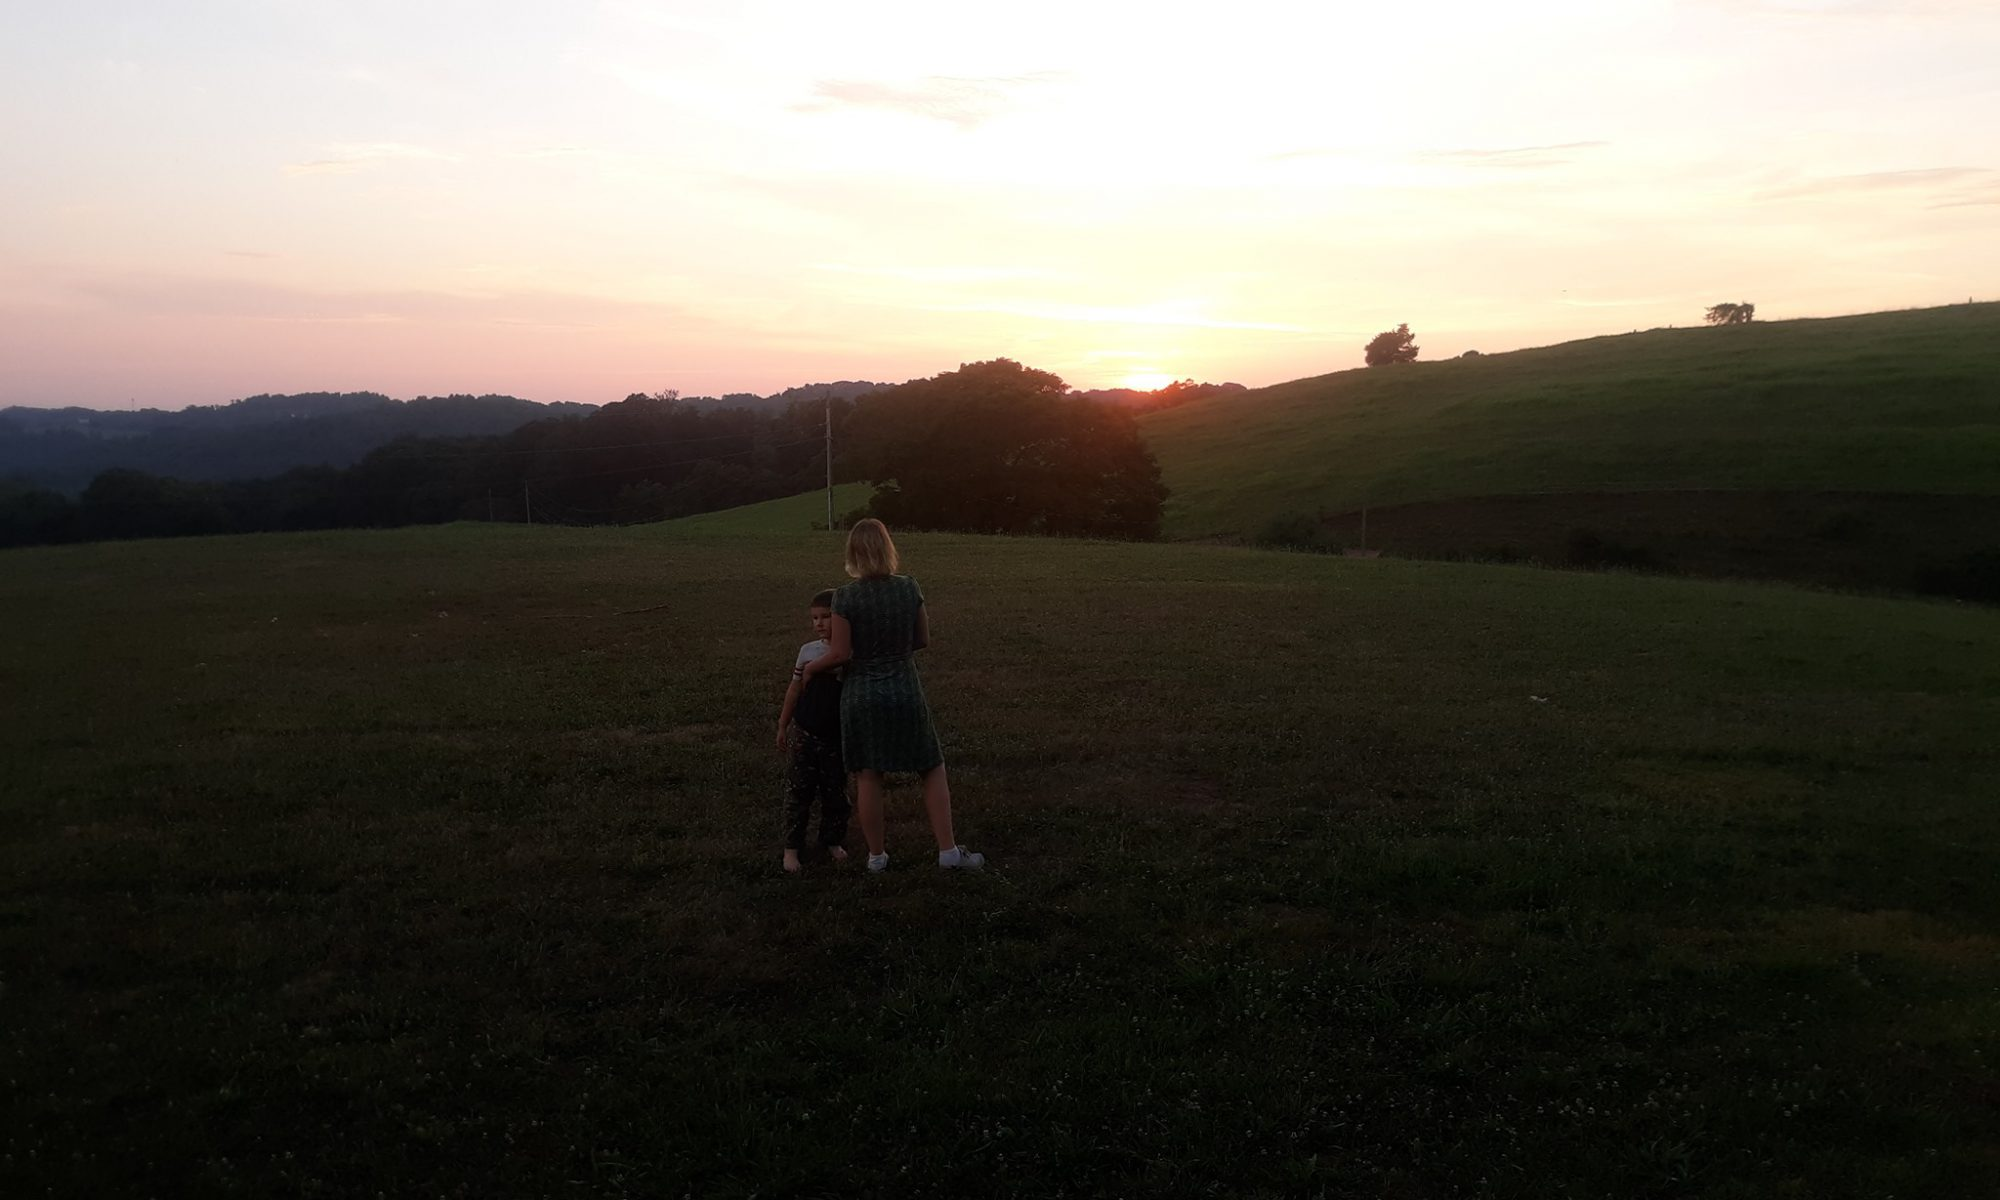 A photo of a blonde woman standing in a field with her son. The woman has her back to the camera and is wearing a green dress.